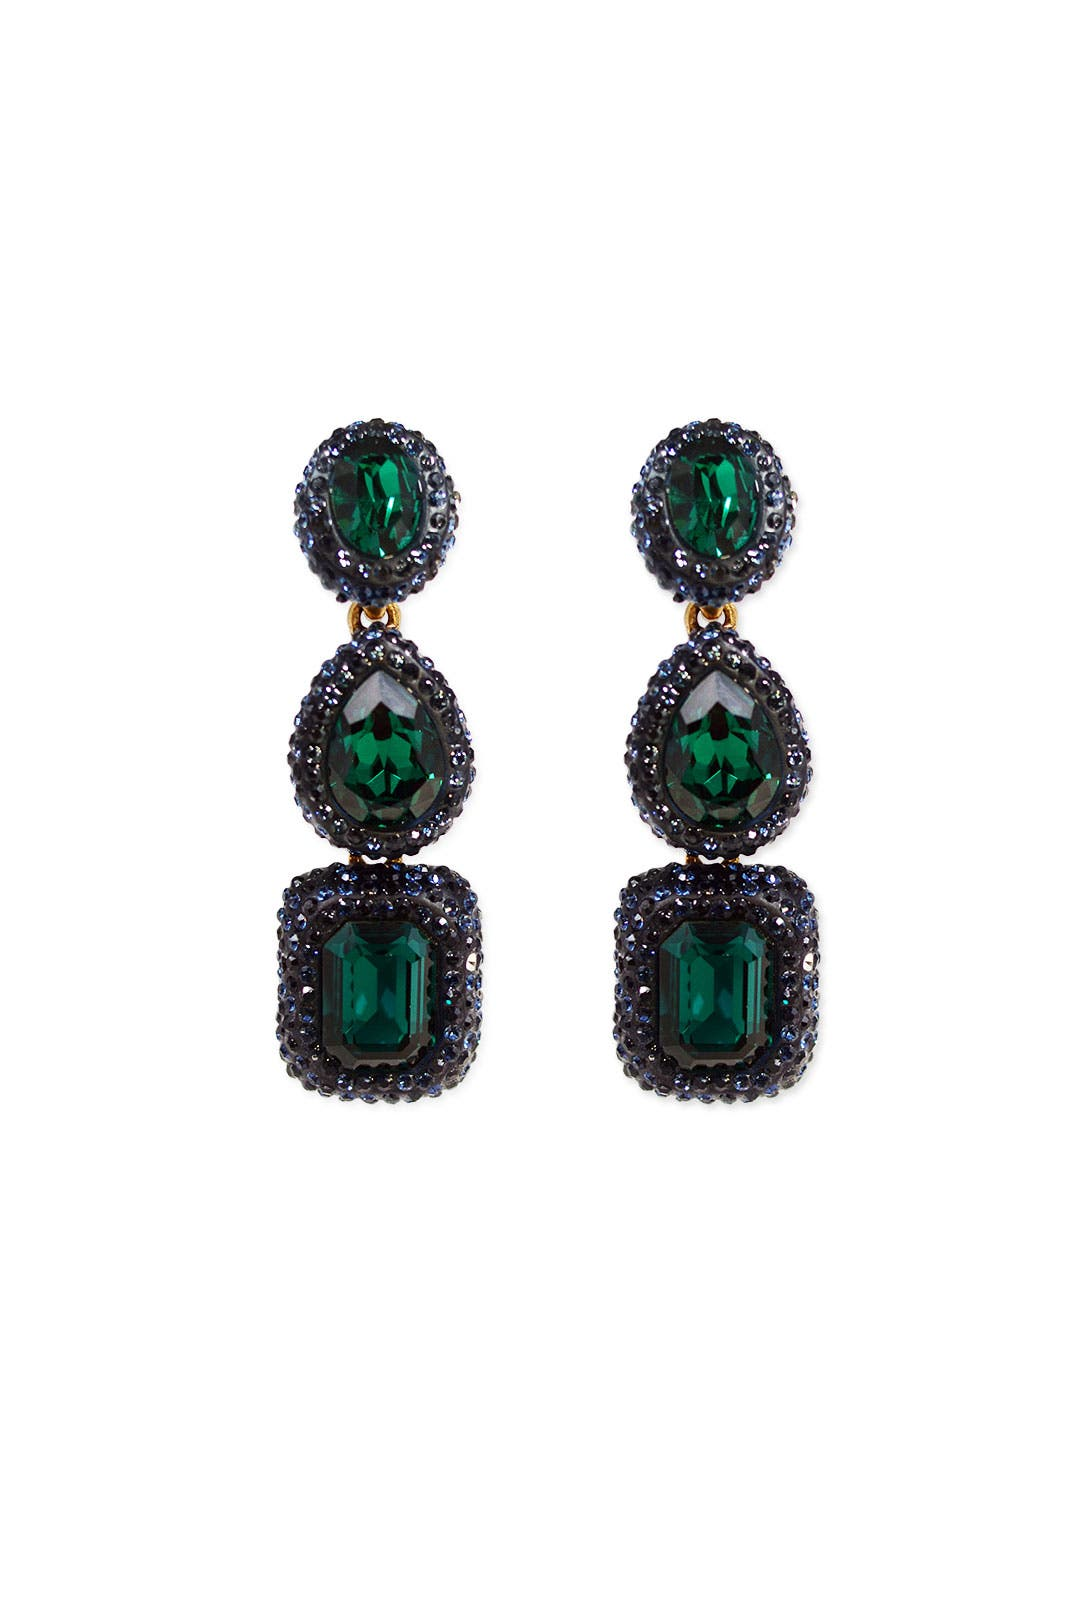 Creeping Ivy Earrings by Oscar de la Renta